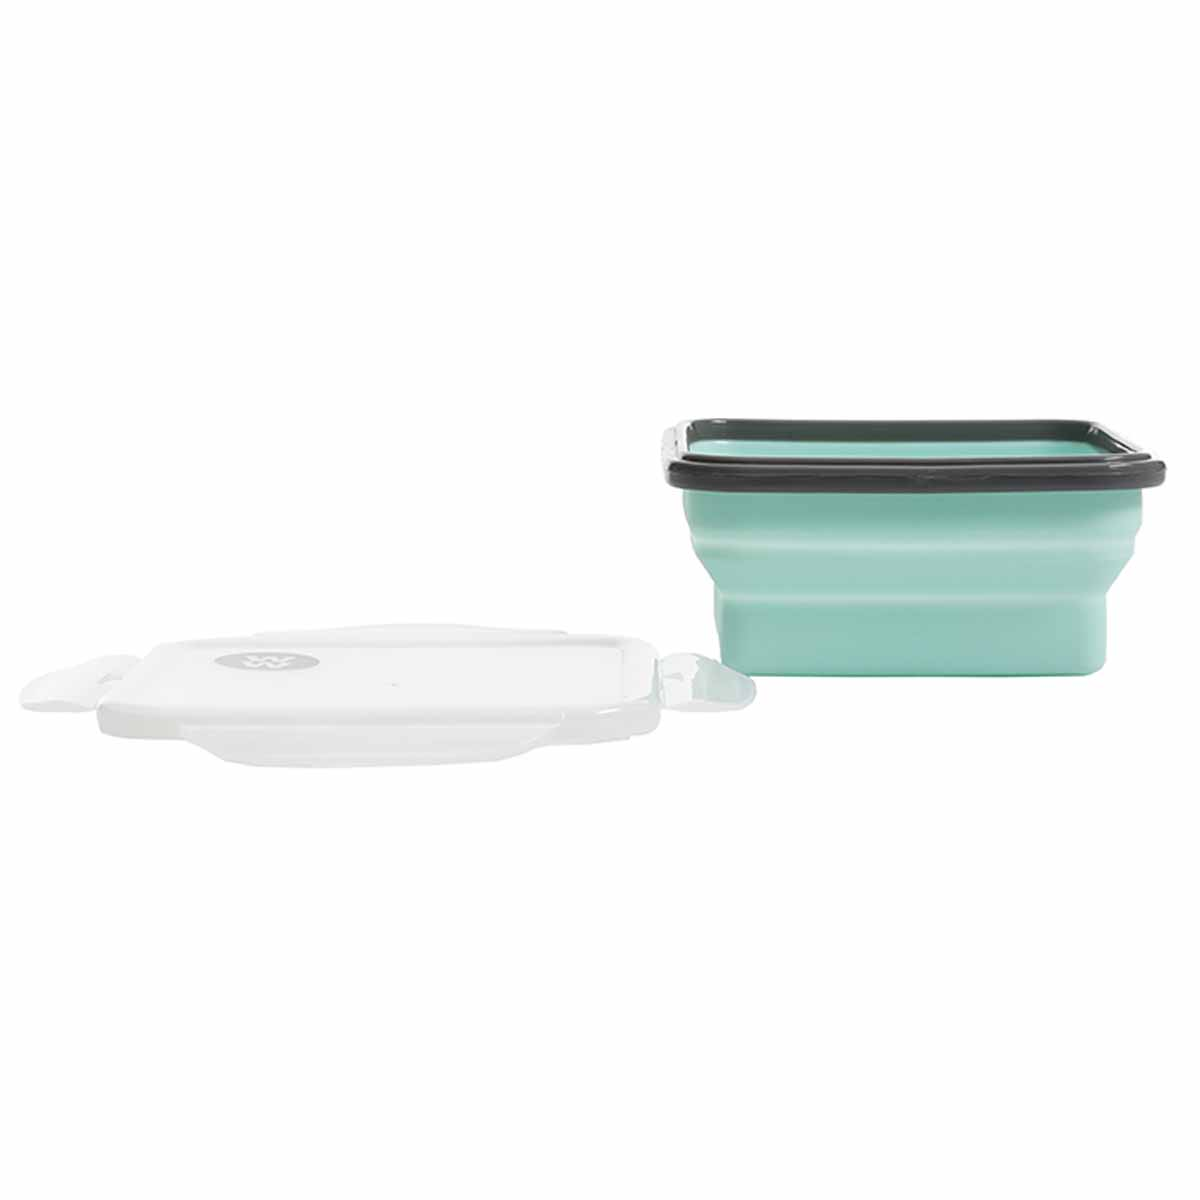 "6.25"" Silicone Portion Control Container - alternate view"